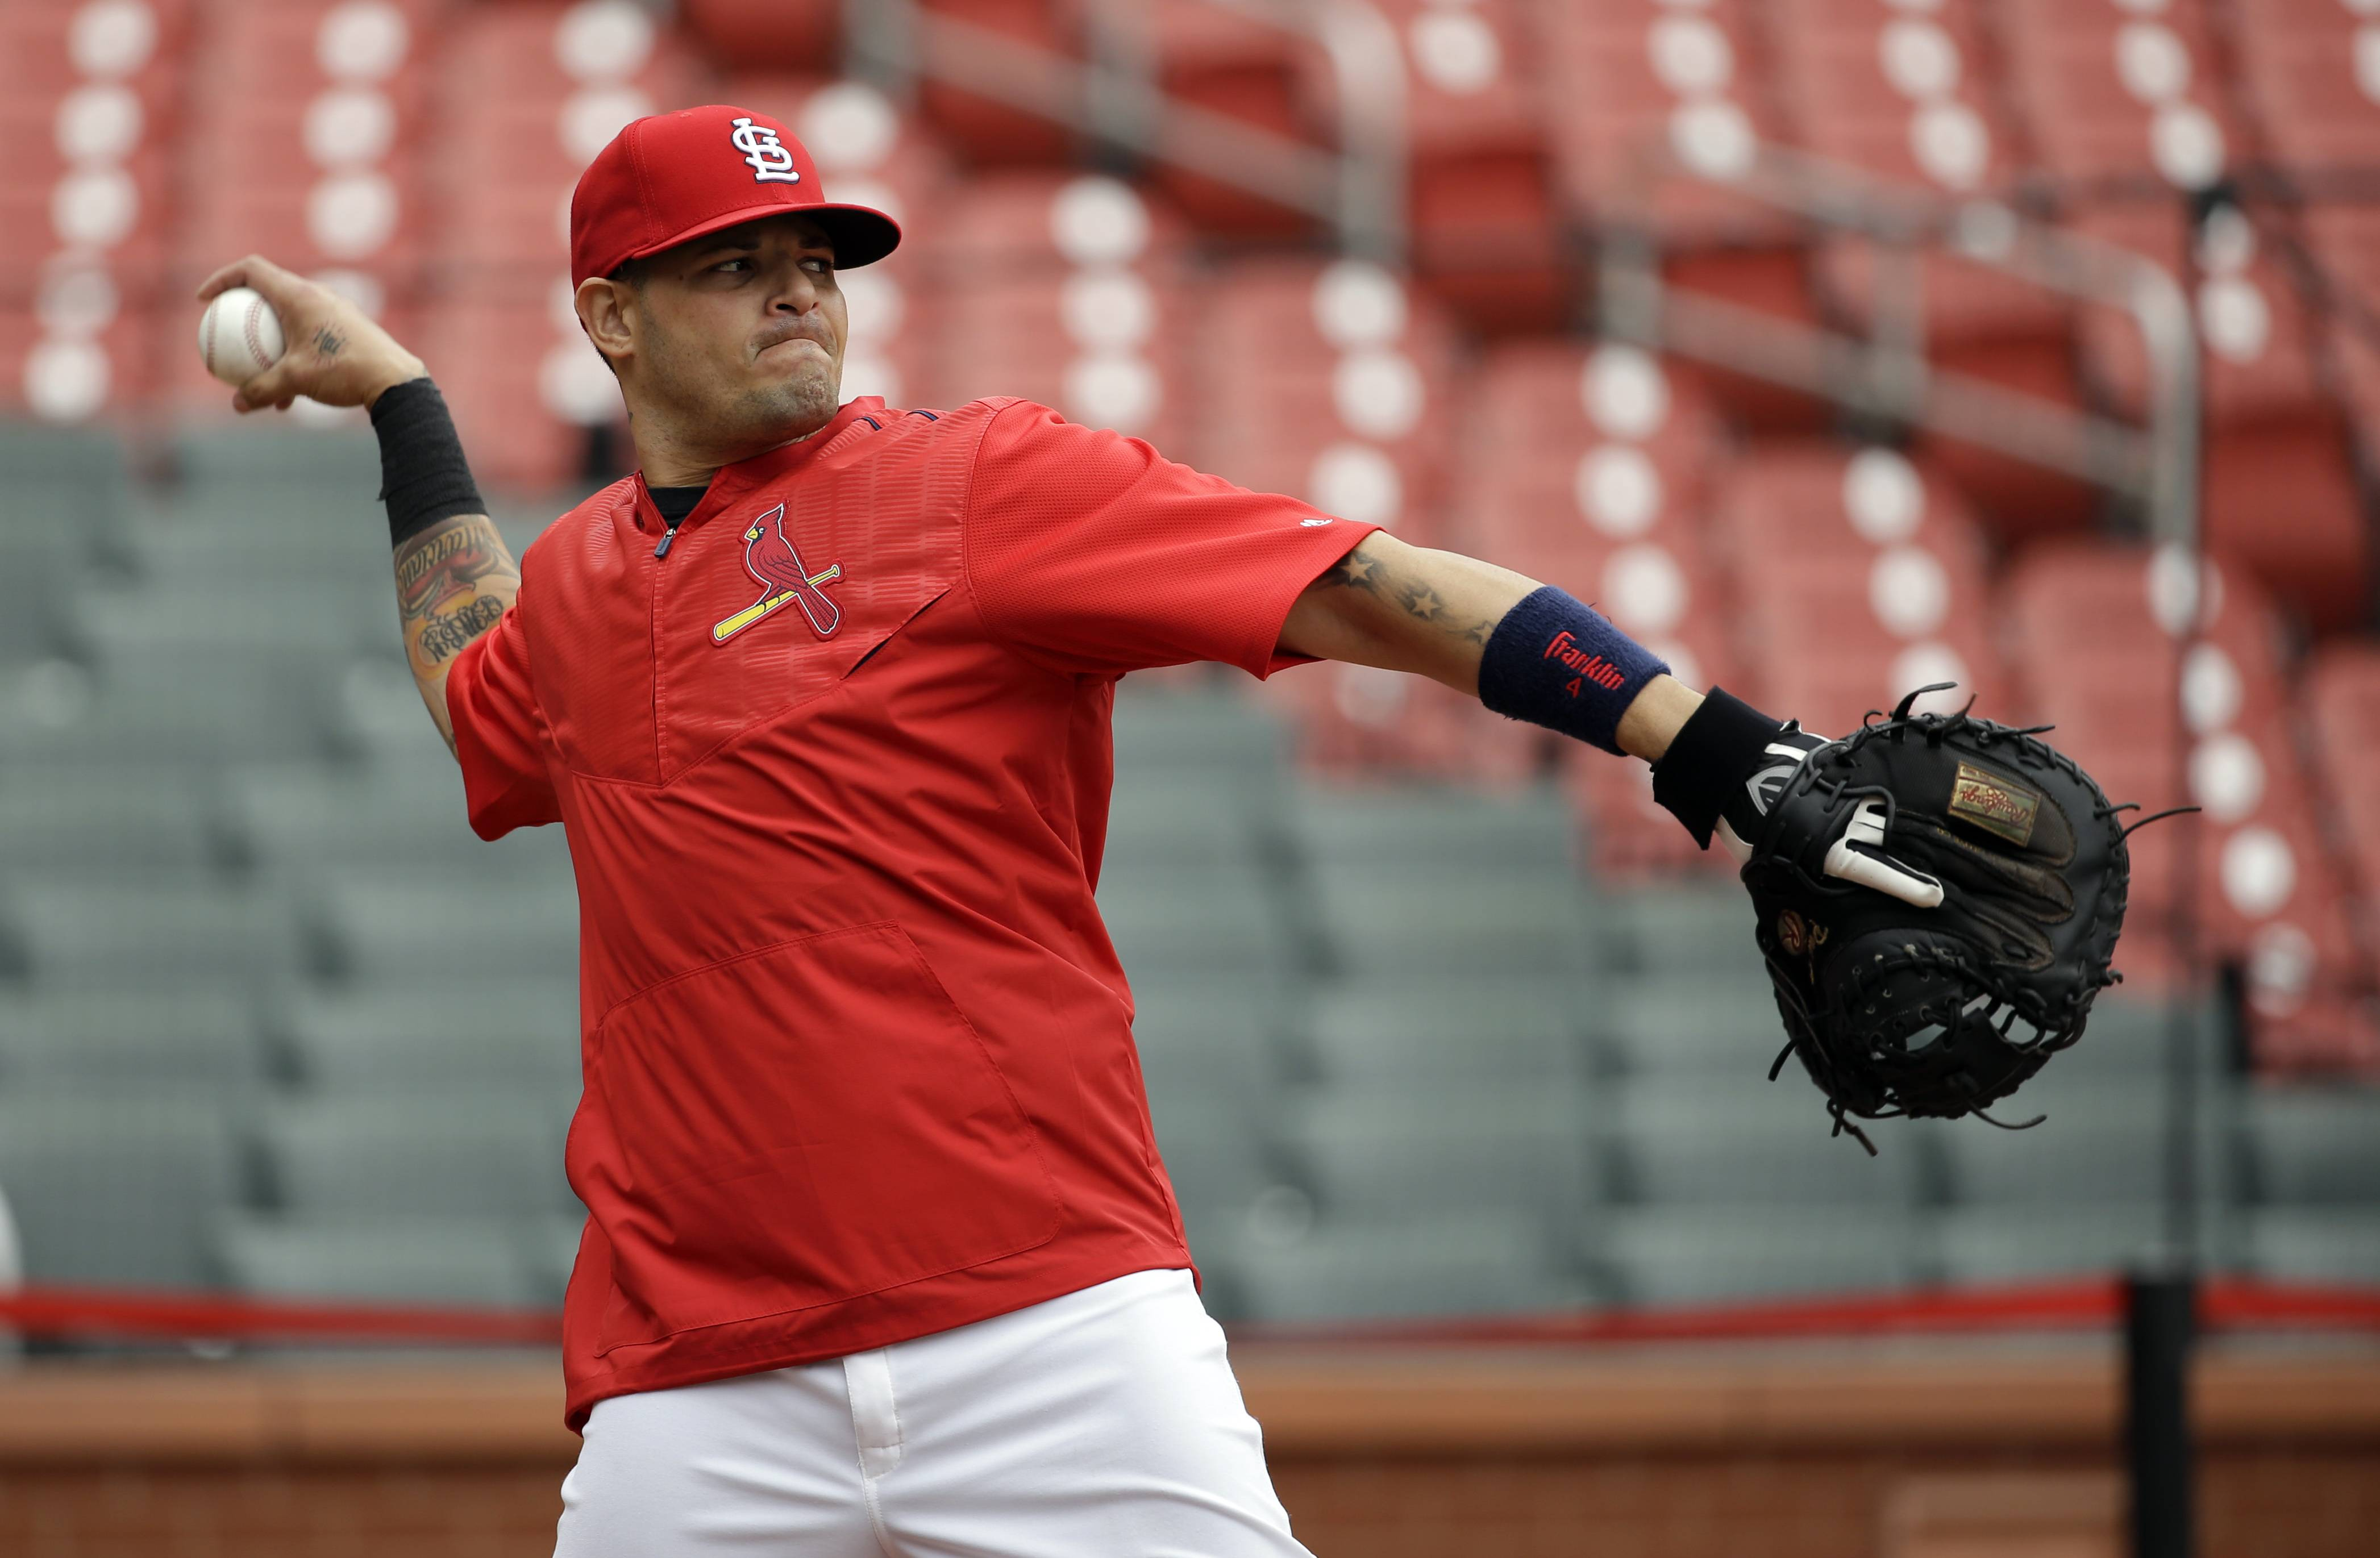 Cardinals hoping Molina is good to go vs. Cubs in NLDS